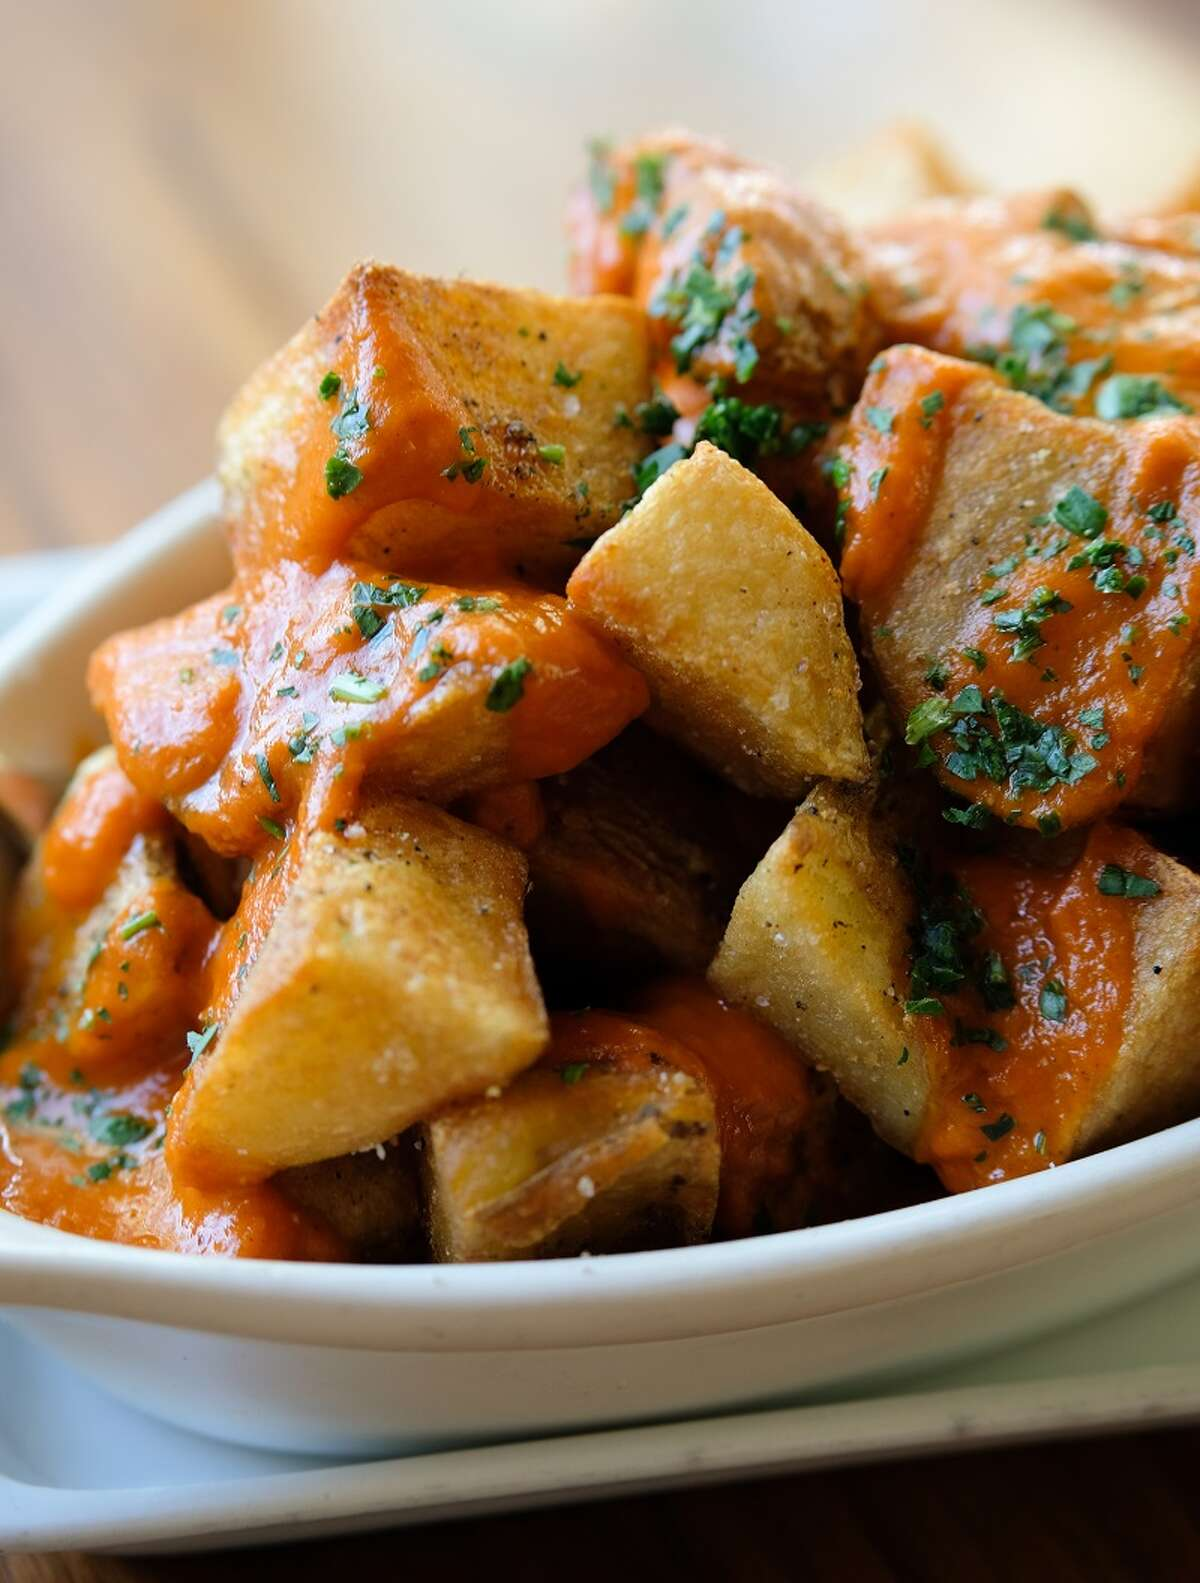 The new fall/winter menu at Bistro Menil was inspired by chef Greg Martin's recent trips to Spain. There are also new additions of Spanish wine to the wine list. Shown: Patatas bravas, an iconic Spanish dish.